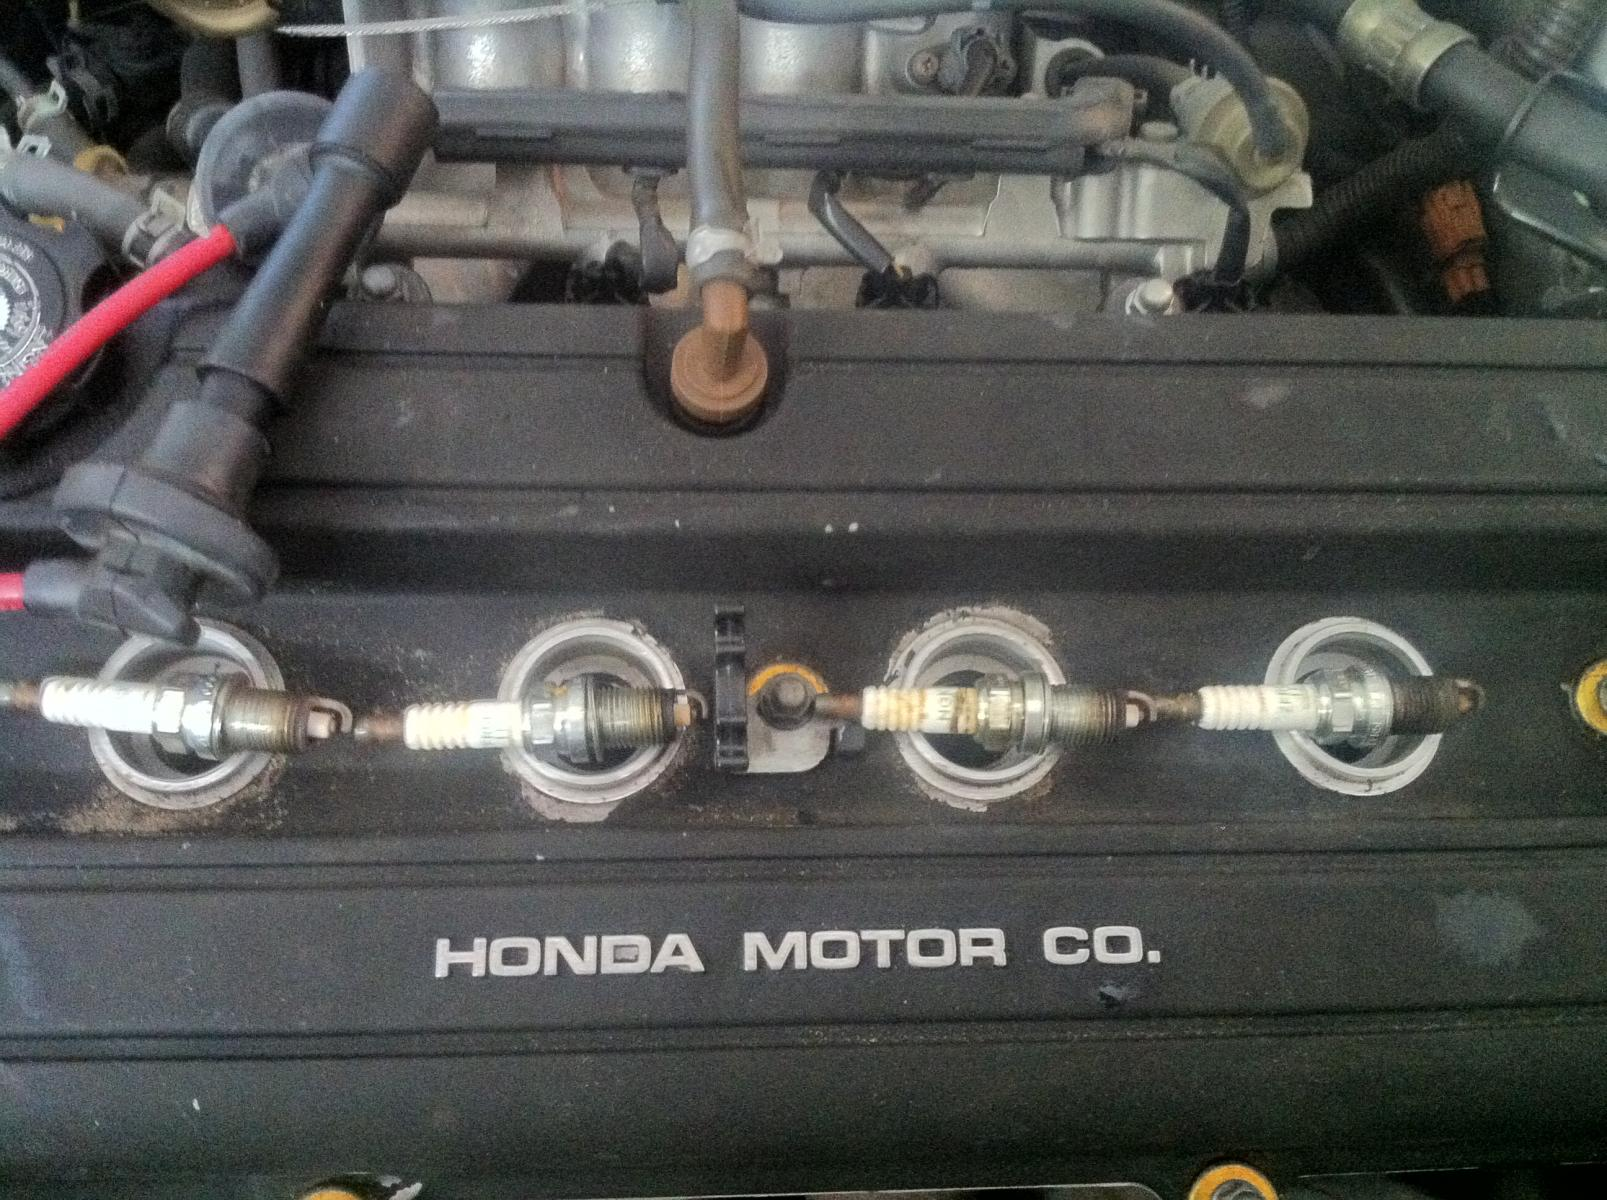 Engine misfire at idle and low RPM - Team Integra Forums - Team Integra